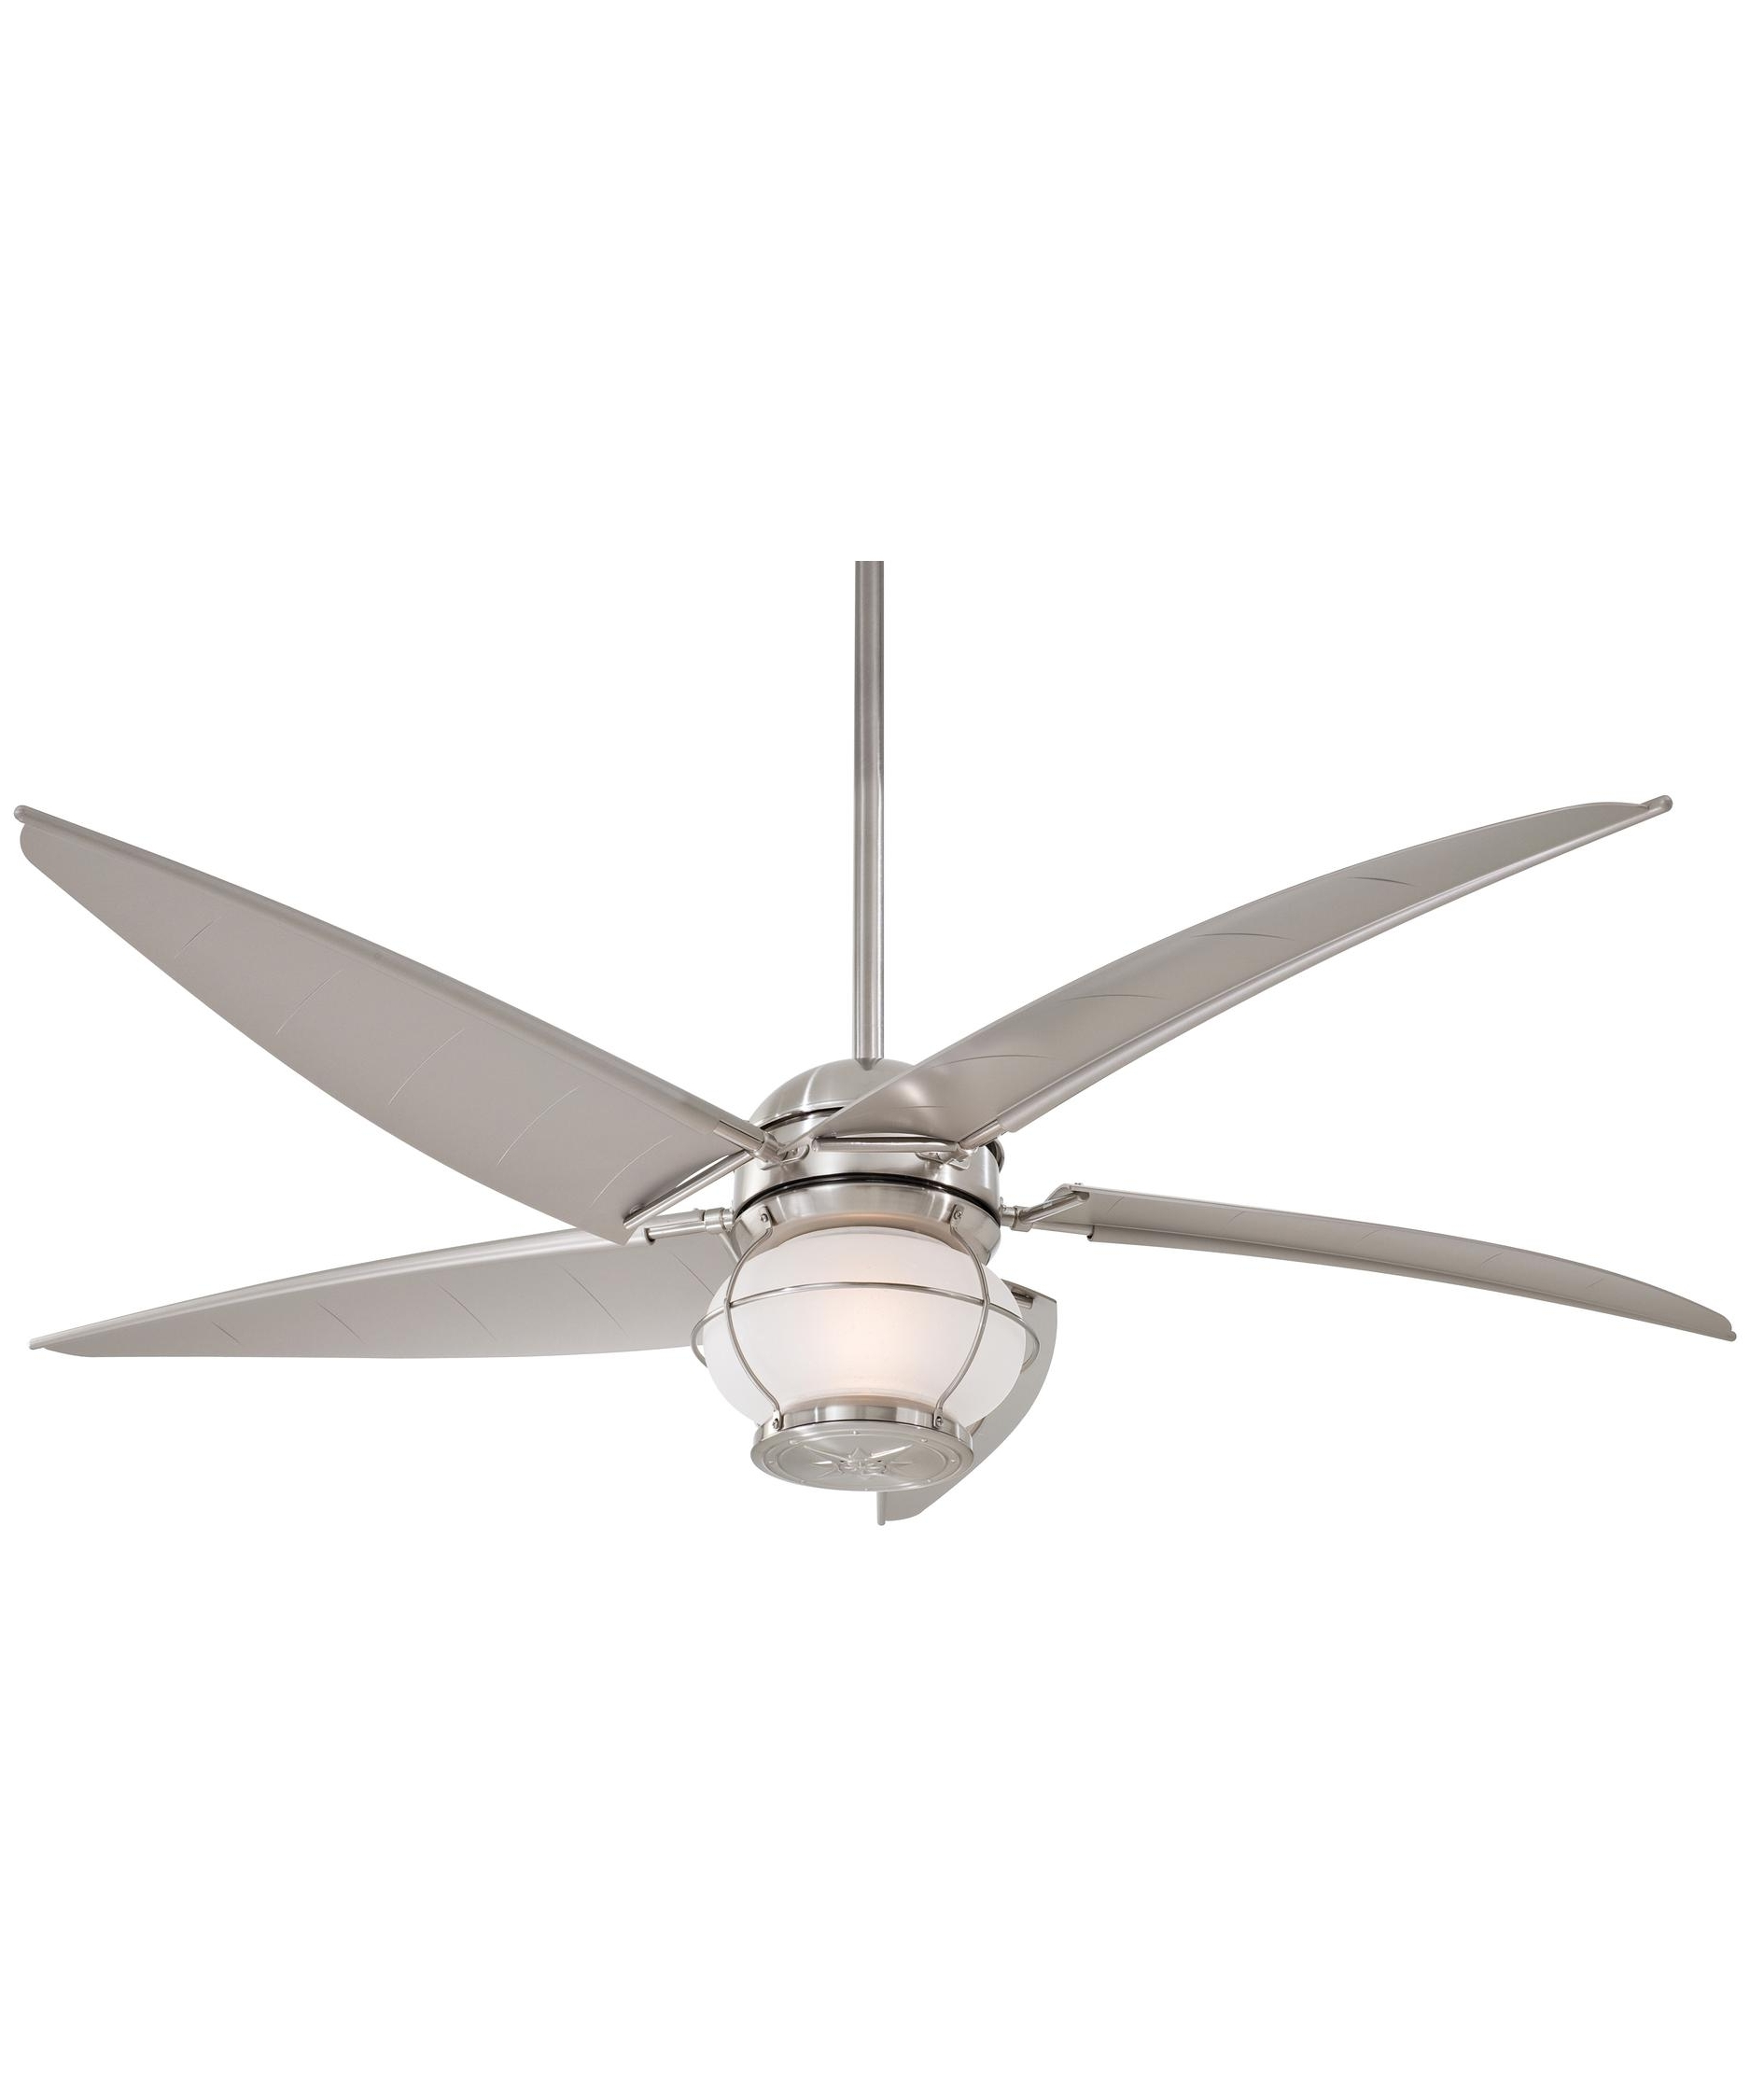 Brushed Nickel Outdoor Ceiling Fans With Light Inside Most Current Minka Aire F579 Magellan 60 Inch 5 Blade Ceiling Fan (View 2 of 20)